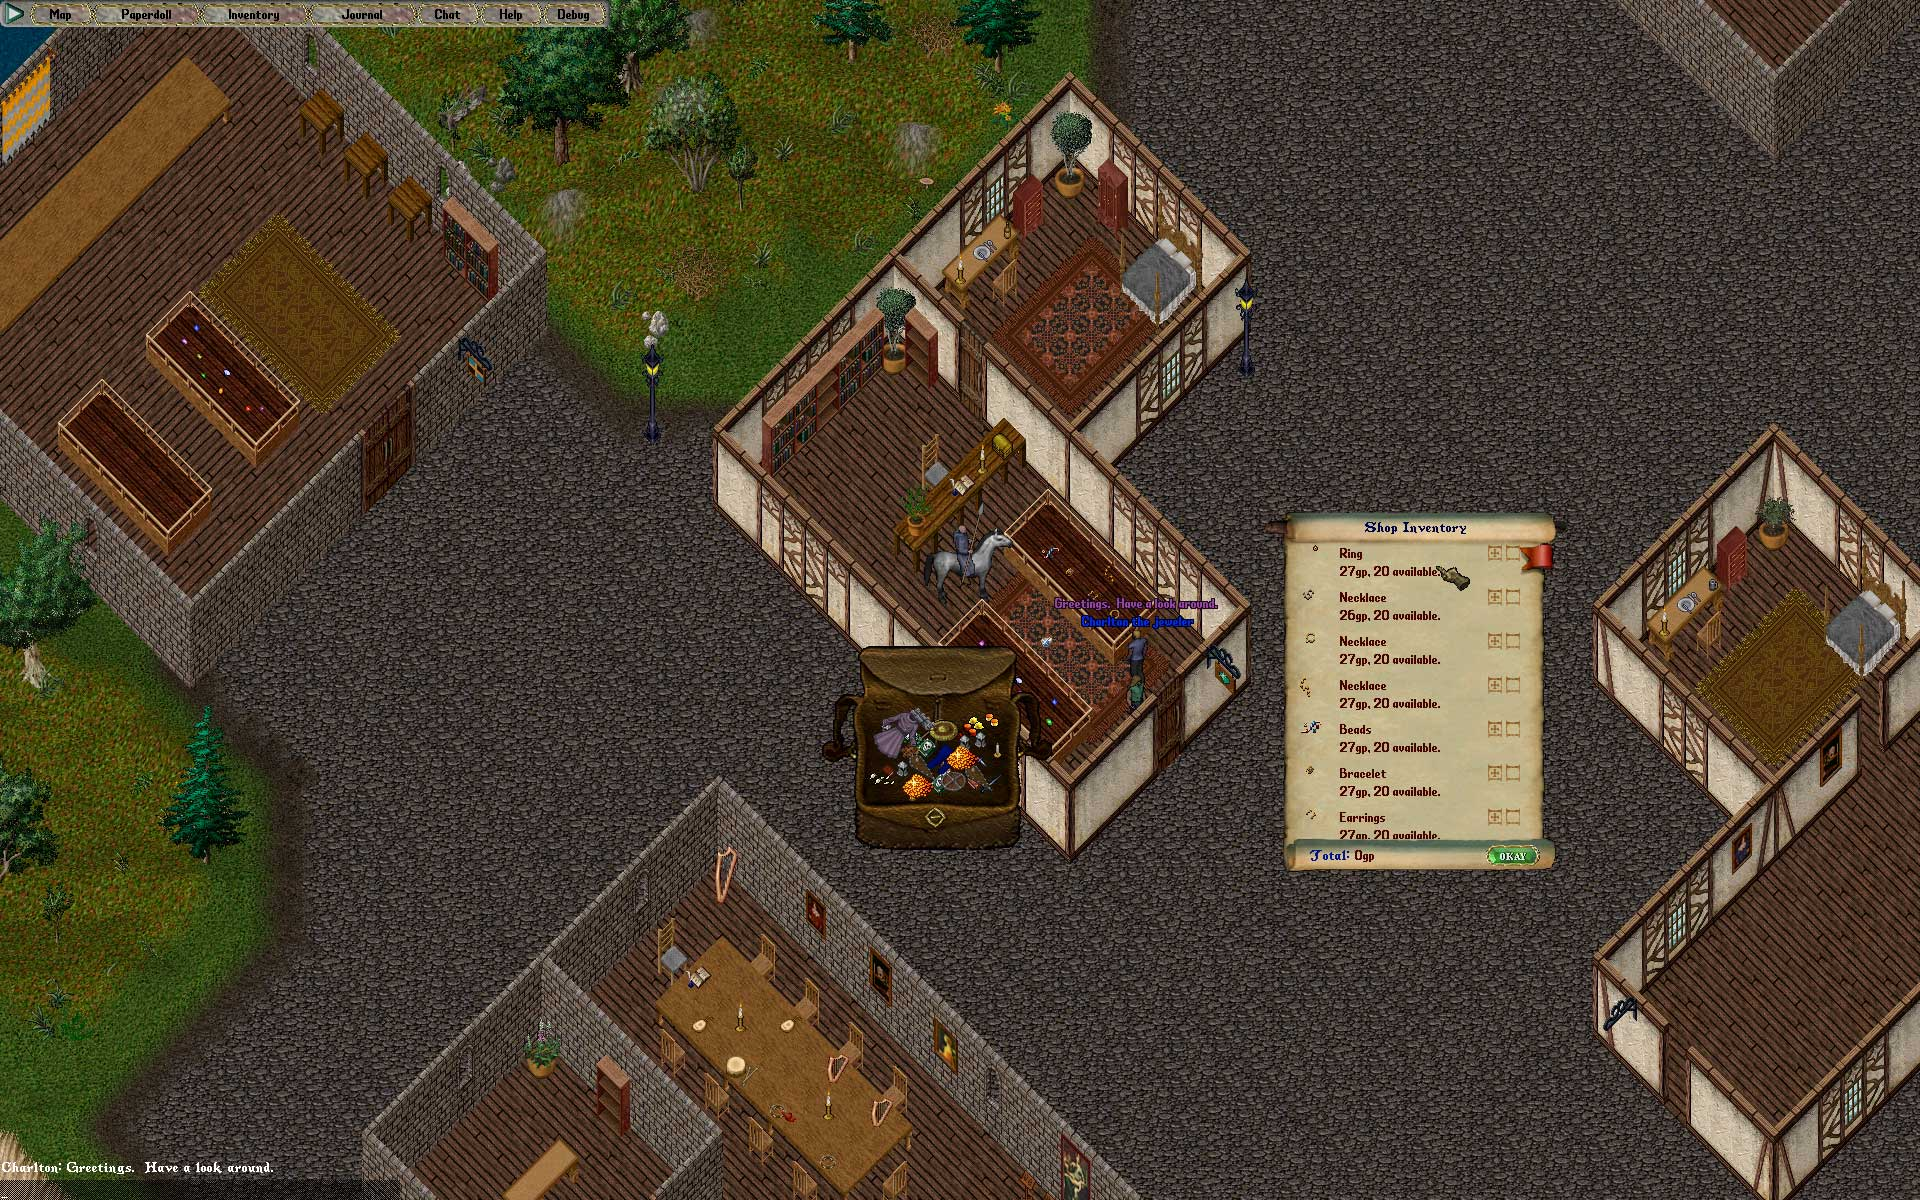 Ultima Online at 1920p60